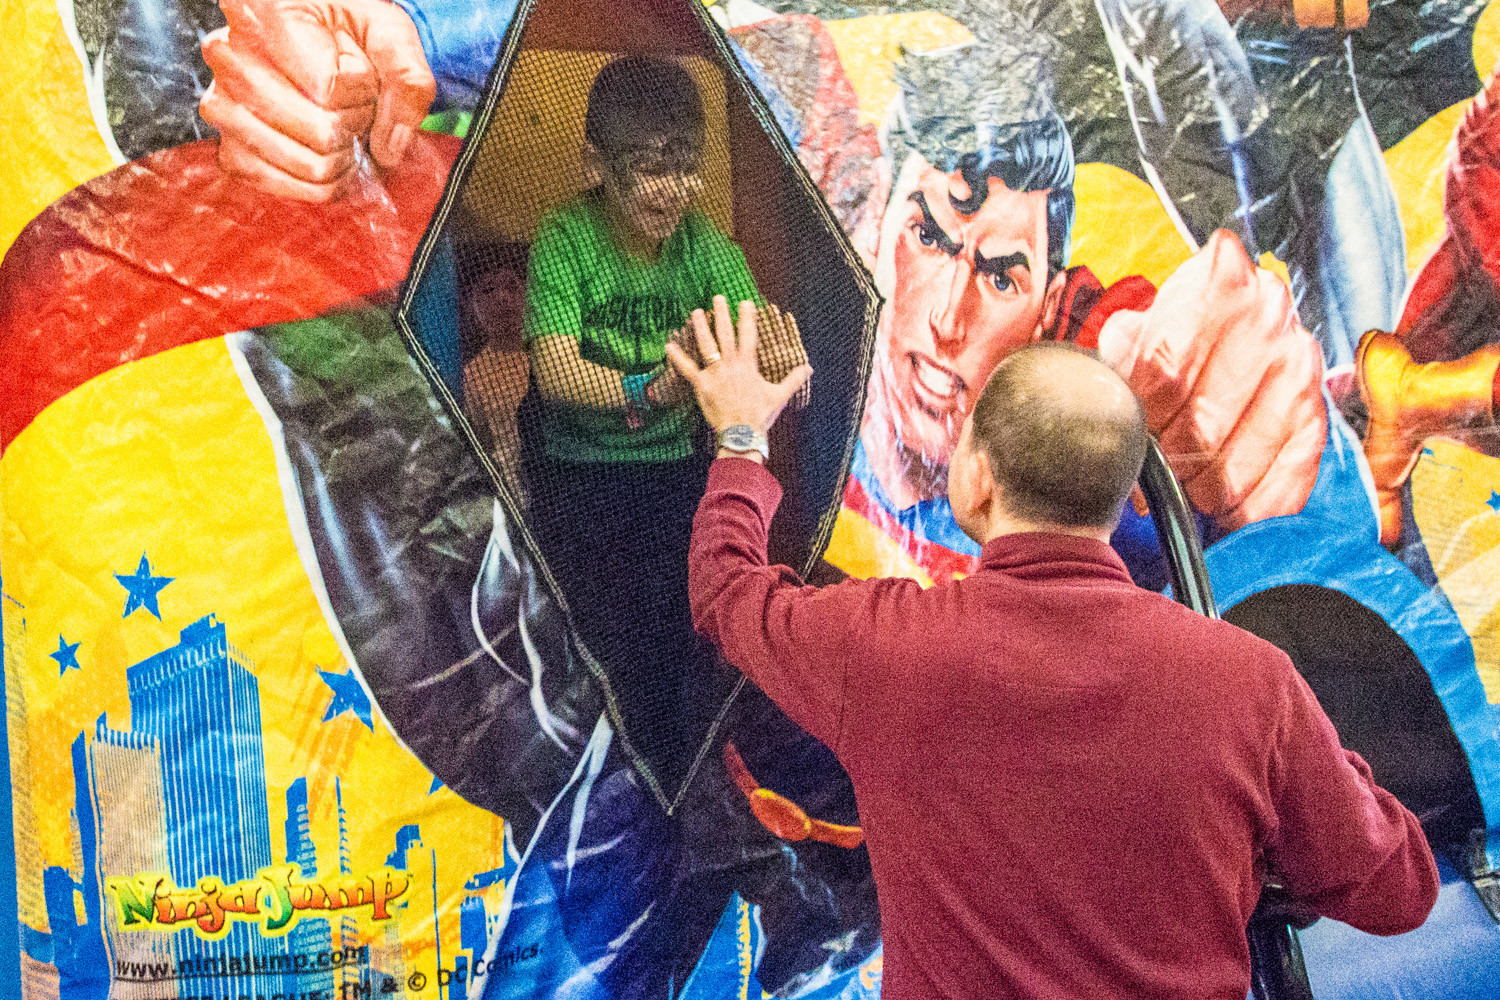 A father high-fives his son through the mesh windows of a Justice League-themed inflatable bounce house during Riverdale Temple's Purim carnival.